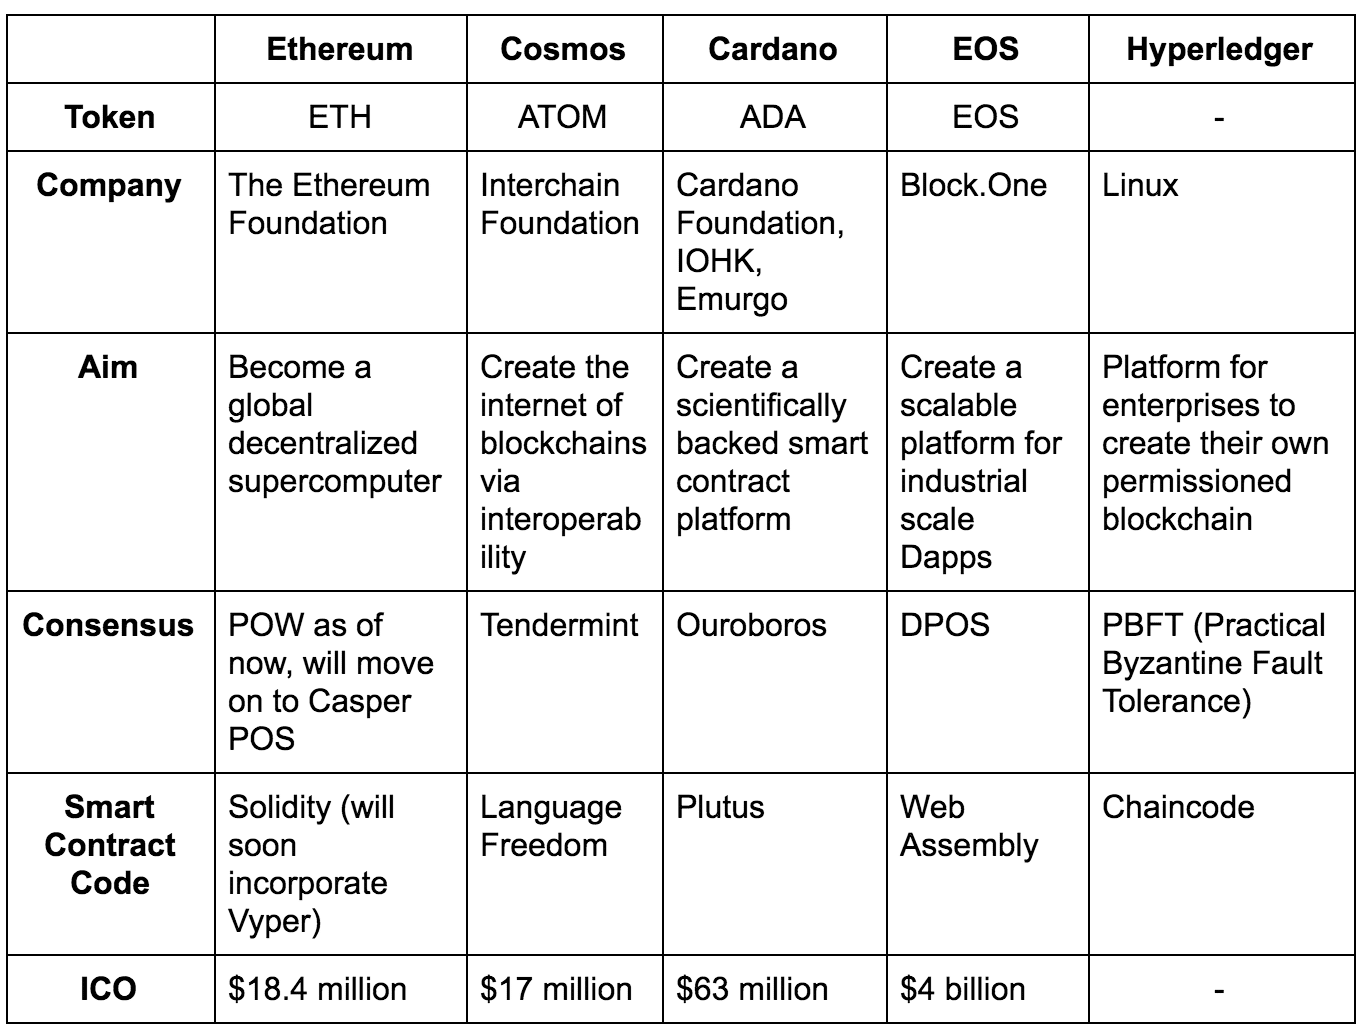 Different Blockchains: Ethereum vs Cosmos vs Cardano vs EOS vs Hyperledger